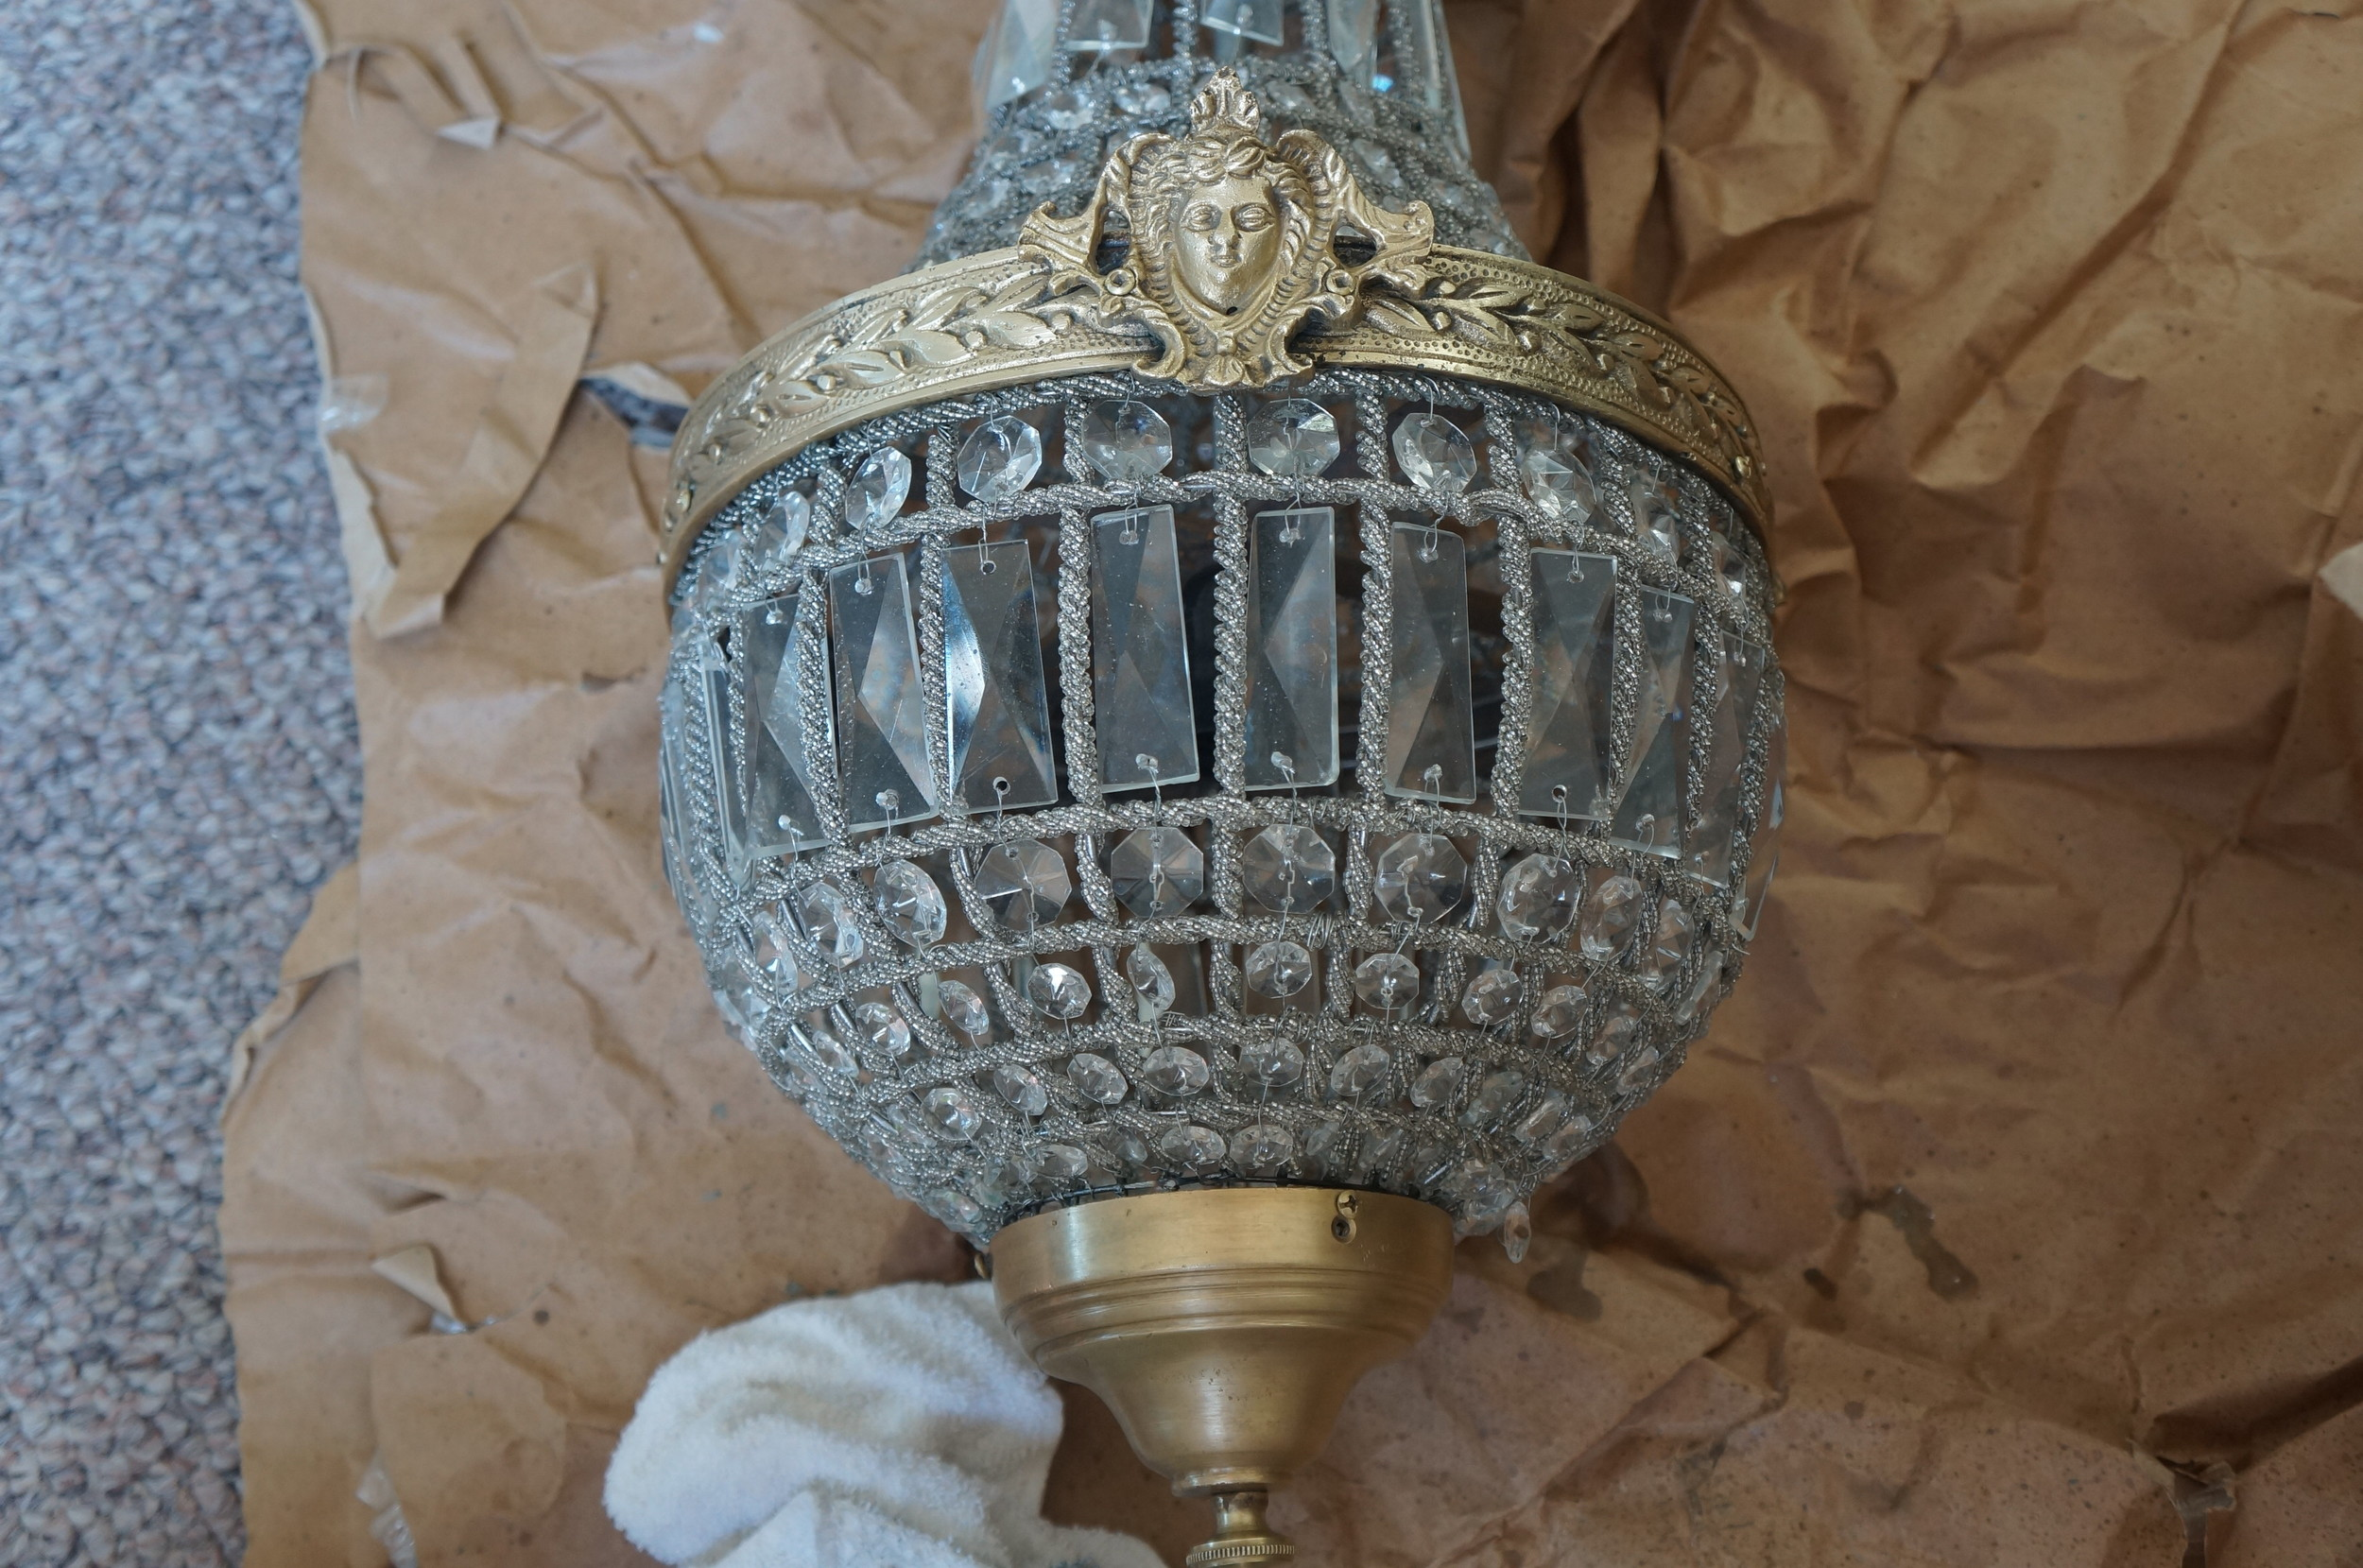 Cleaning Chandelier with Brasso